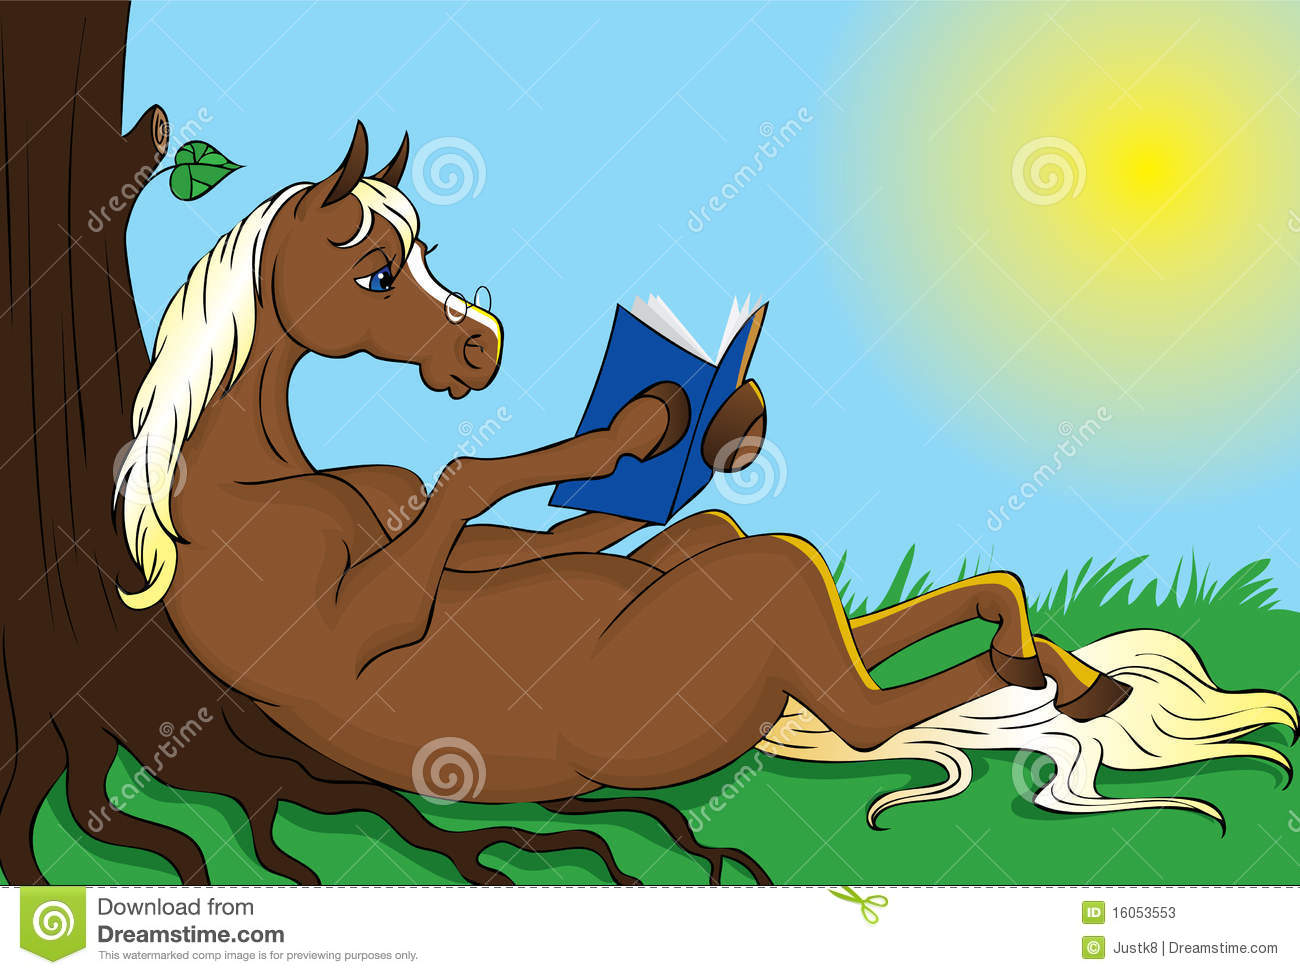 ... blond mane is relaxing under a tree out in nature and reading a book